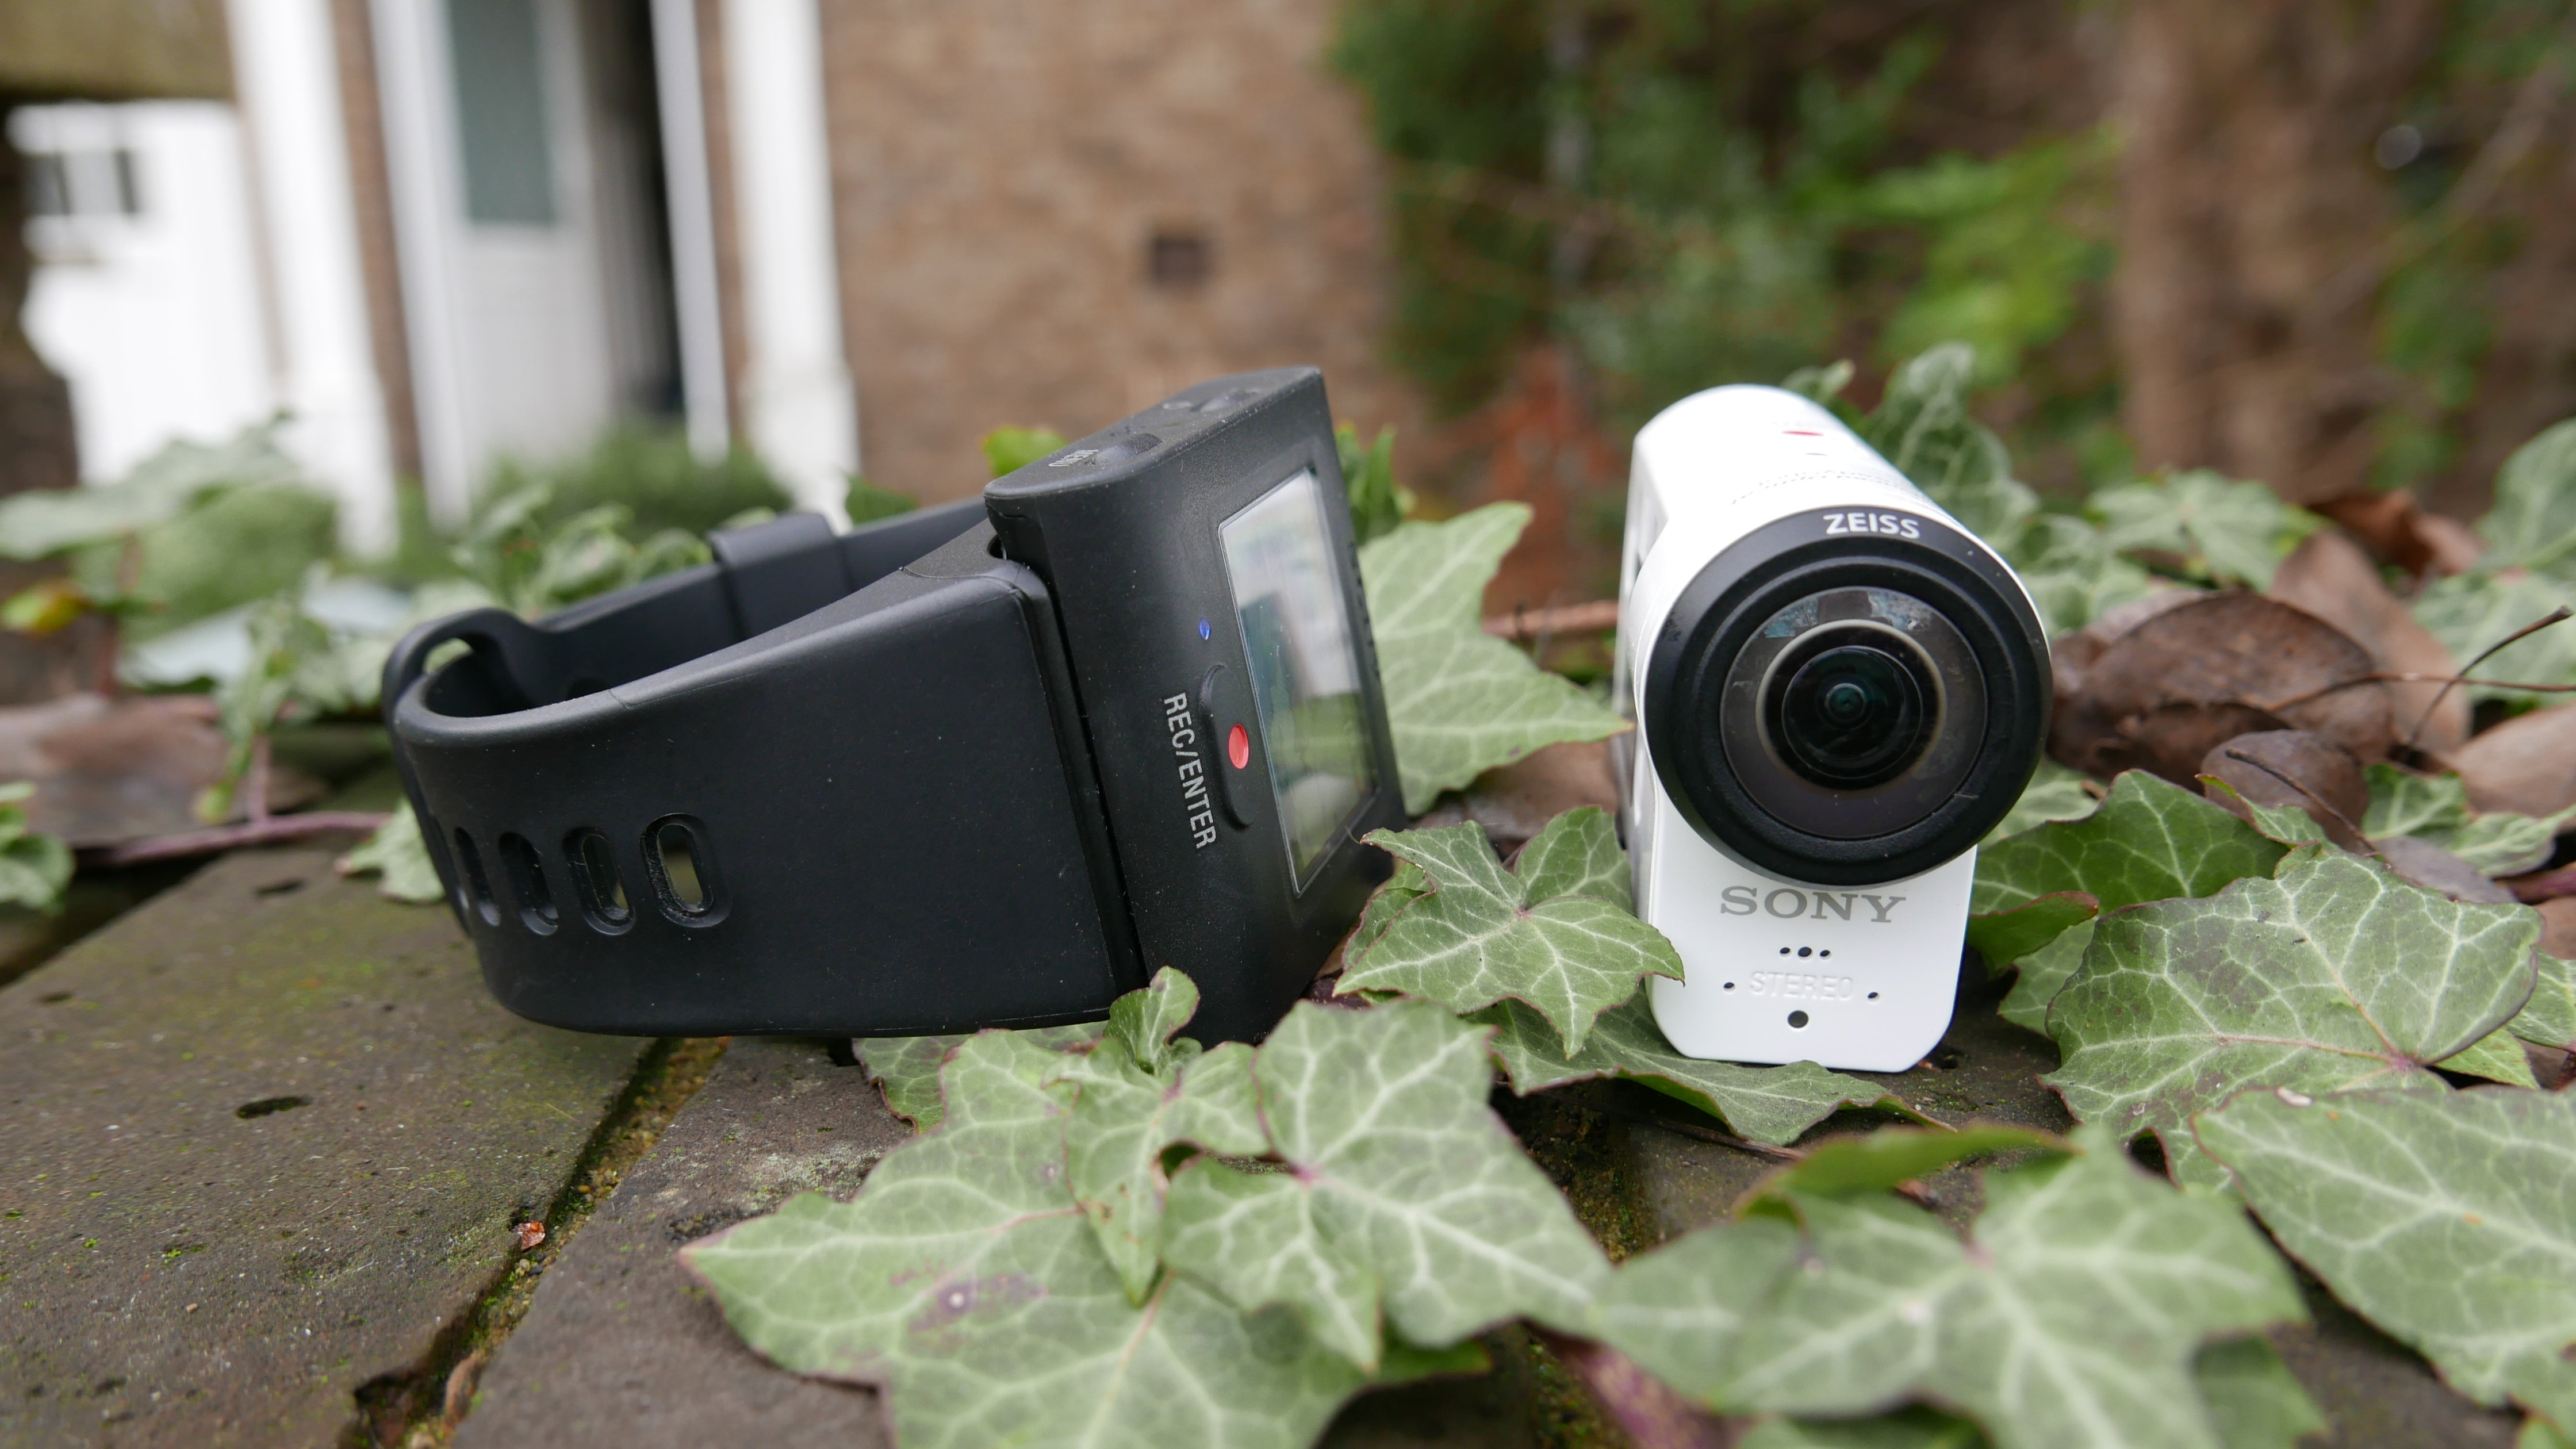 Sony Fdr X3000r Action Cam Review Trusted Reviews Sport 4k Full Hd With Remote